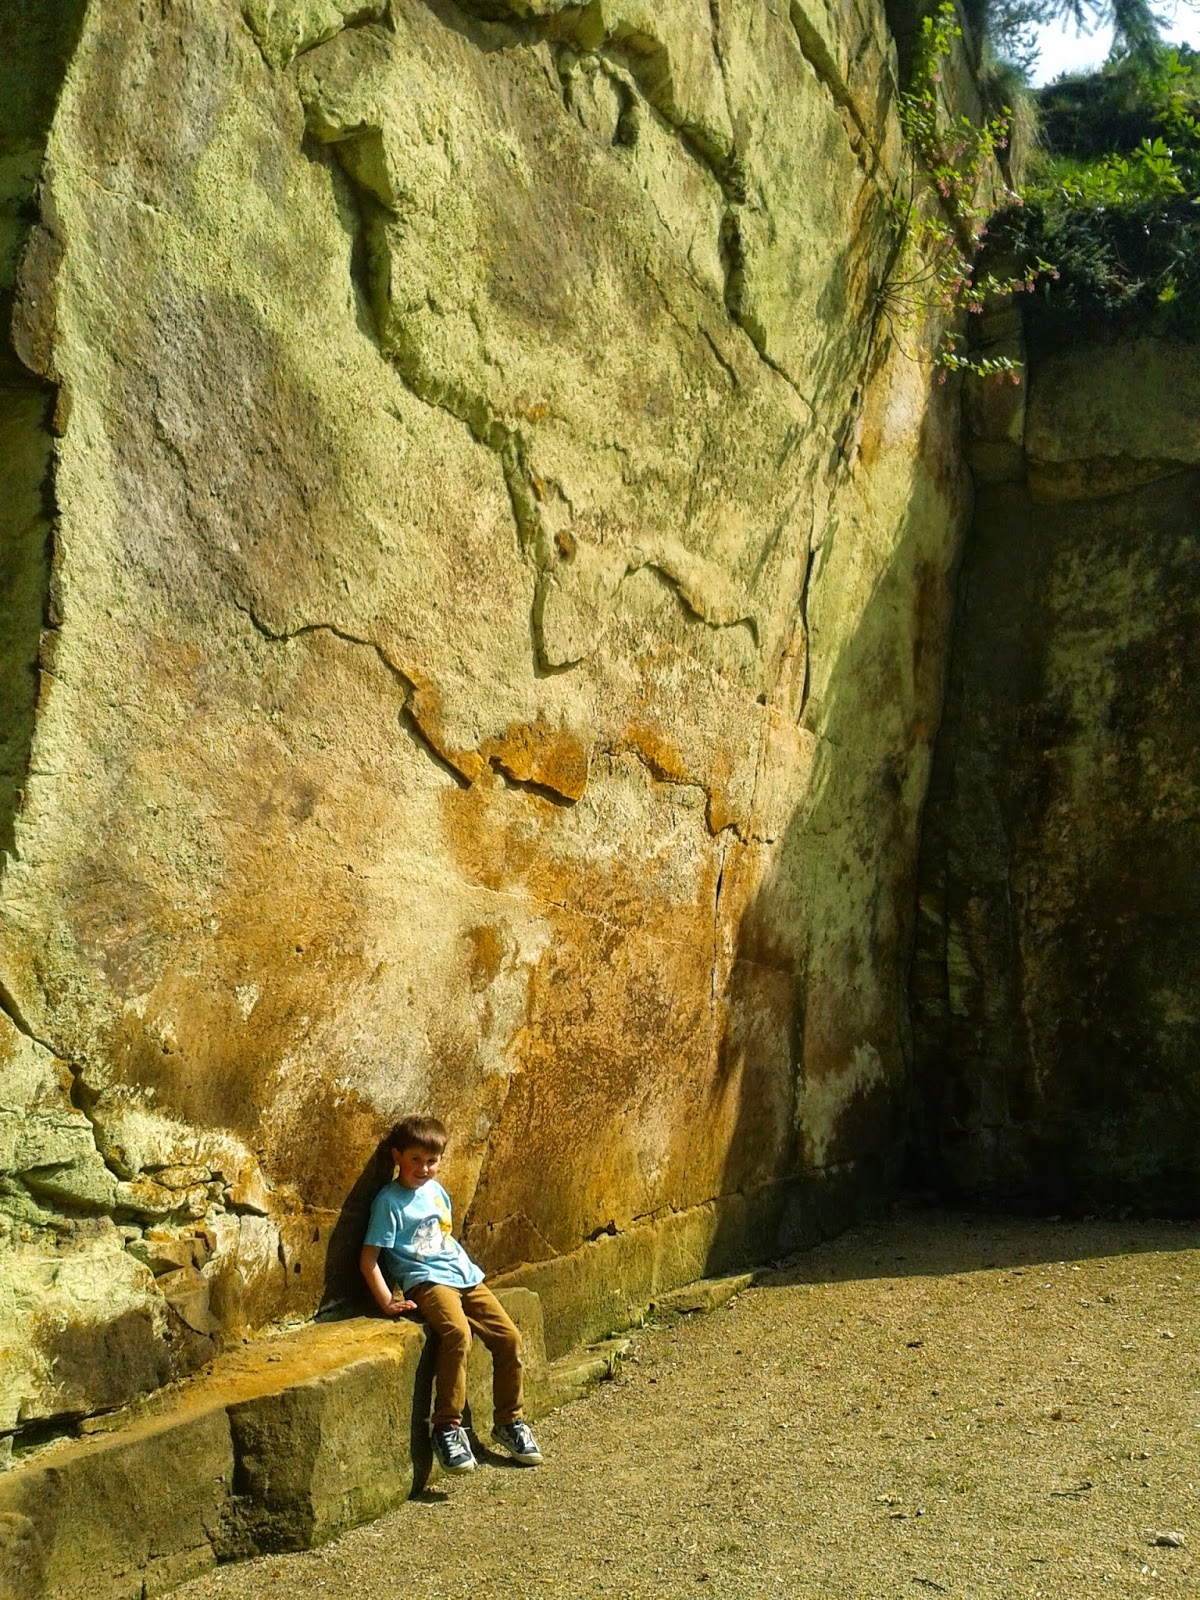 Belsay Hall, Castle and Gardens, Northumberland. Lucas relaxing in the Quarry Garden.